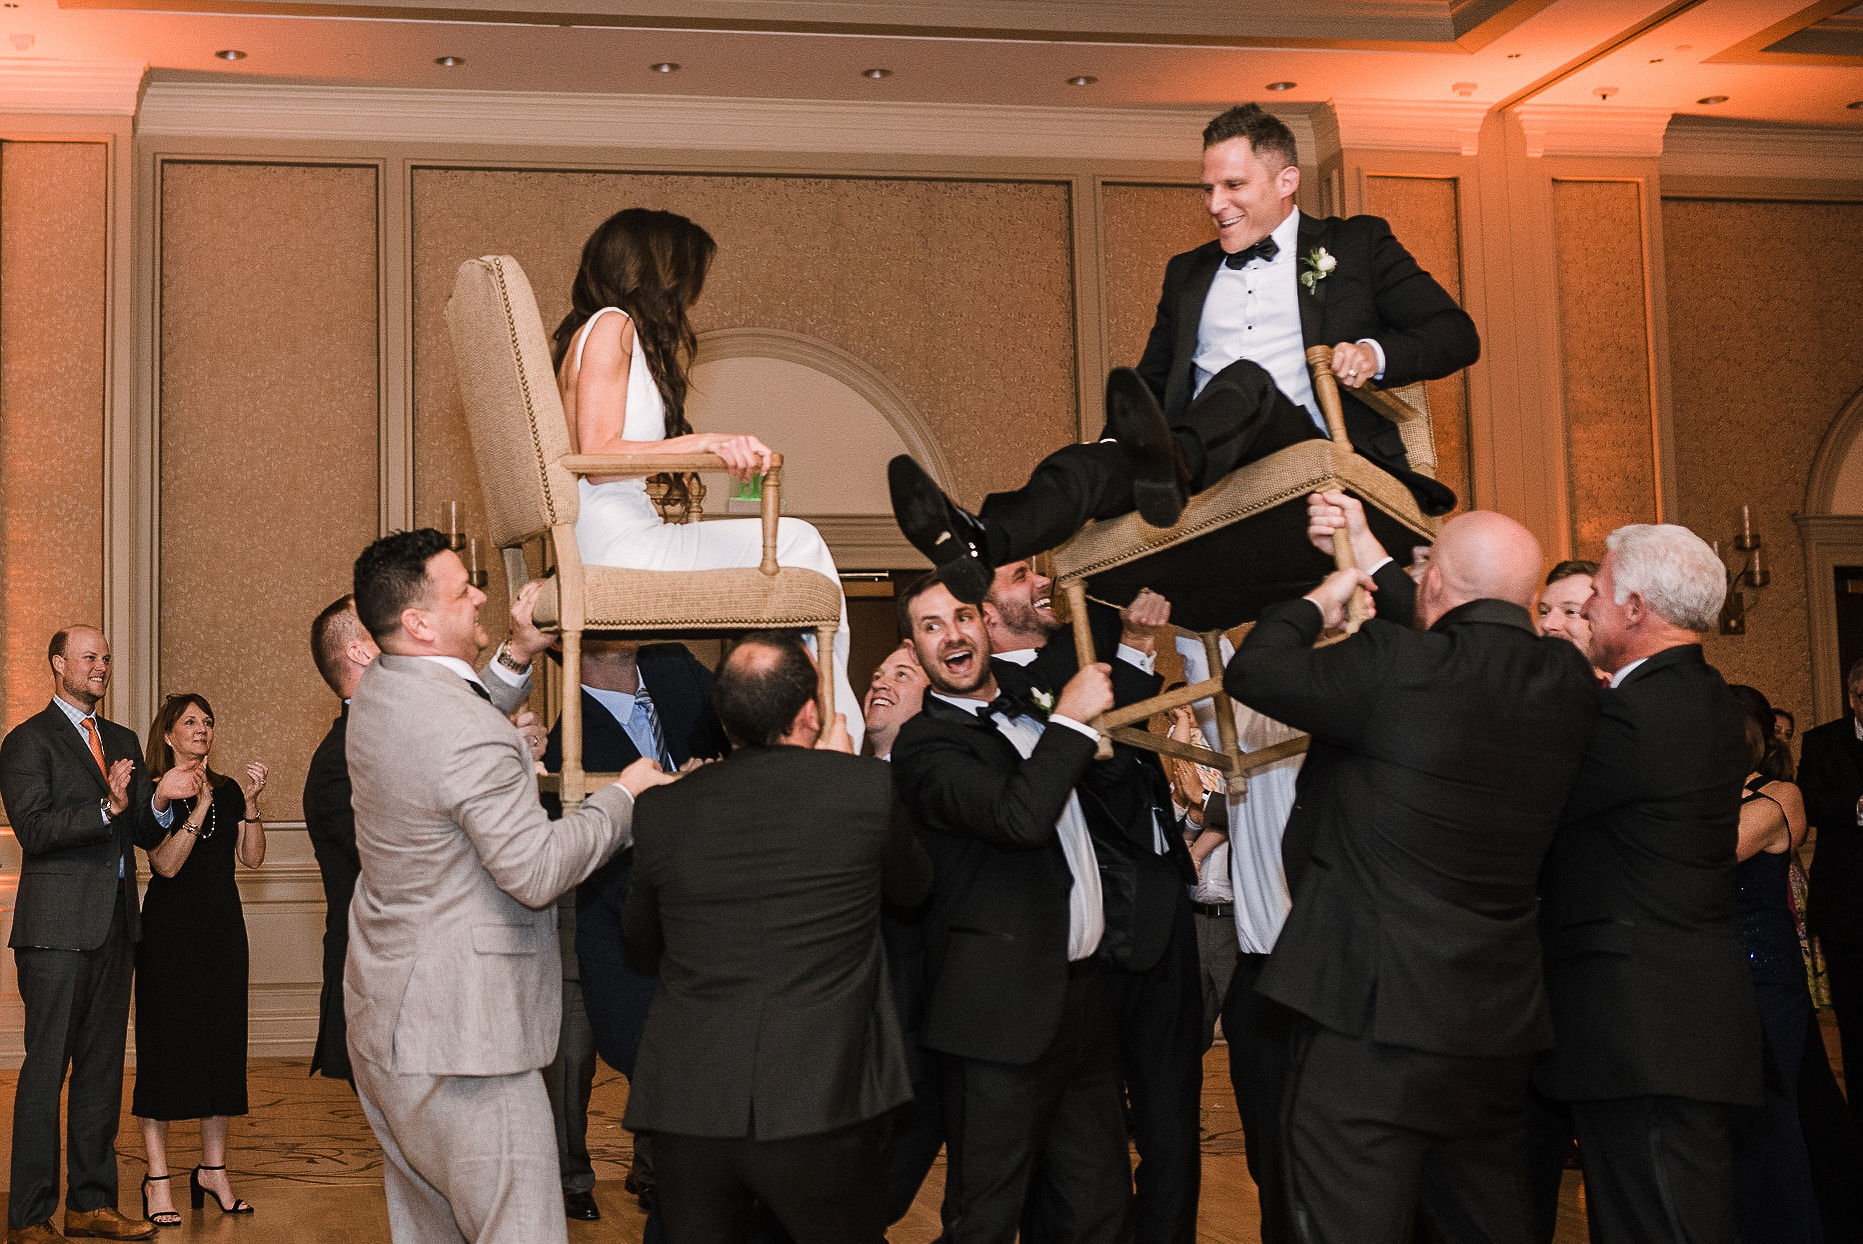 bride and groom sitting in chair and being carried by guests at The Salamander Resort